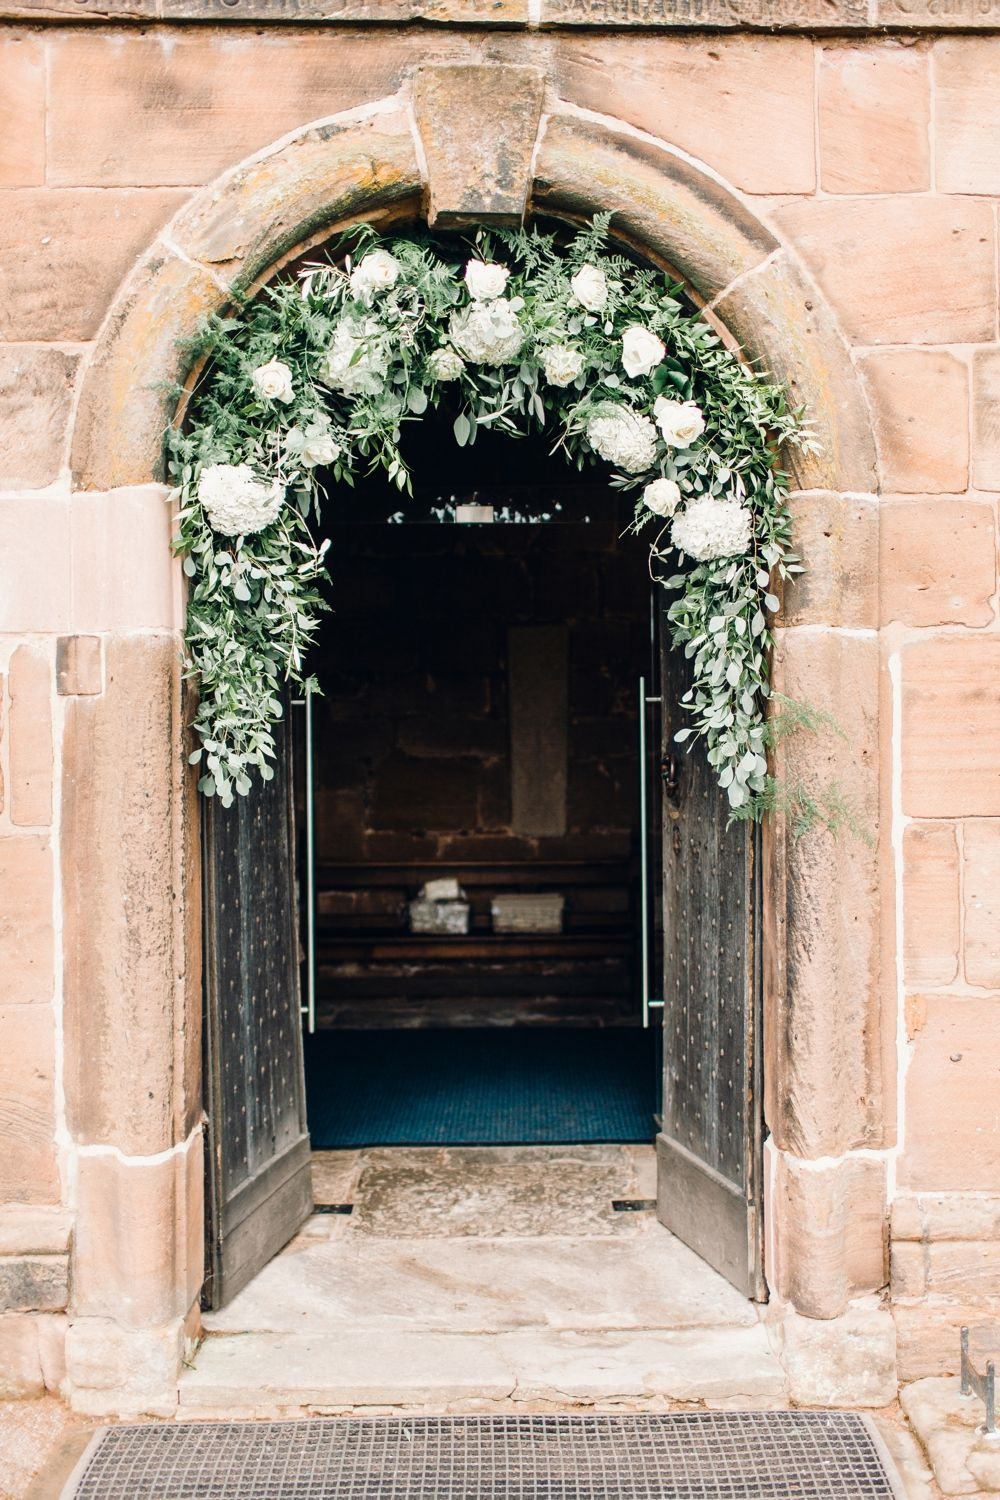 church wedding #wedding Flower Arch Church Greenery Foliage Hydrangea Rose Llanrhaeadr Springs Wedding Jessica Reeve Photography #Flower #Arch #Church #Greenery #Foliage #Hydrangea #Rose #wedding